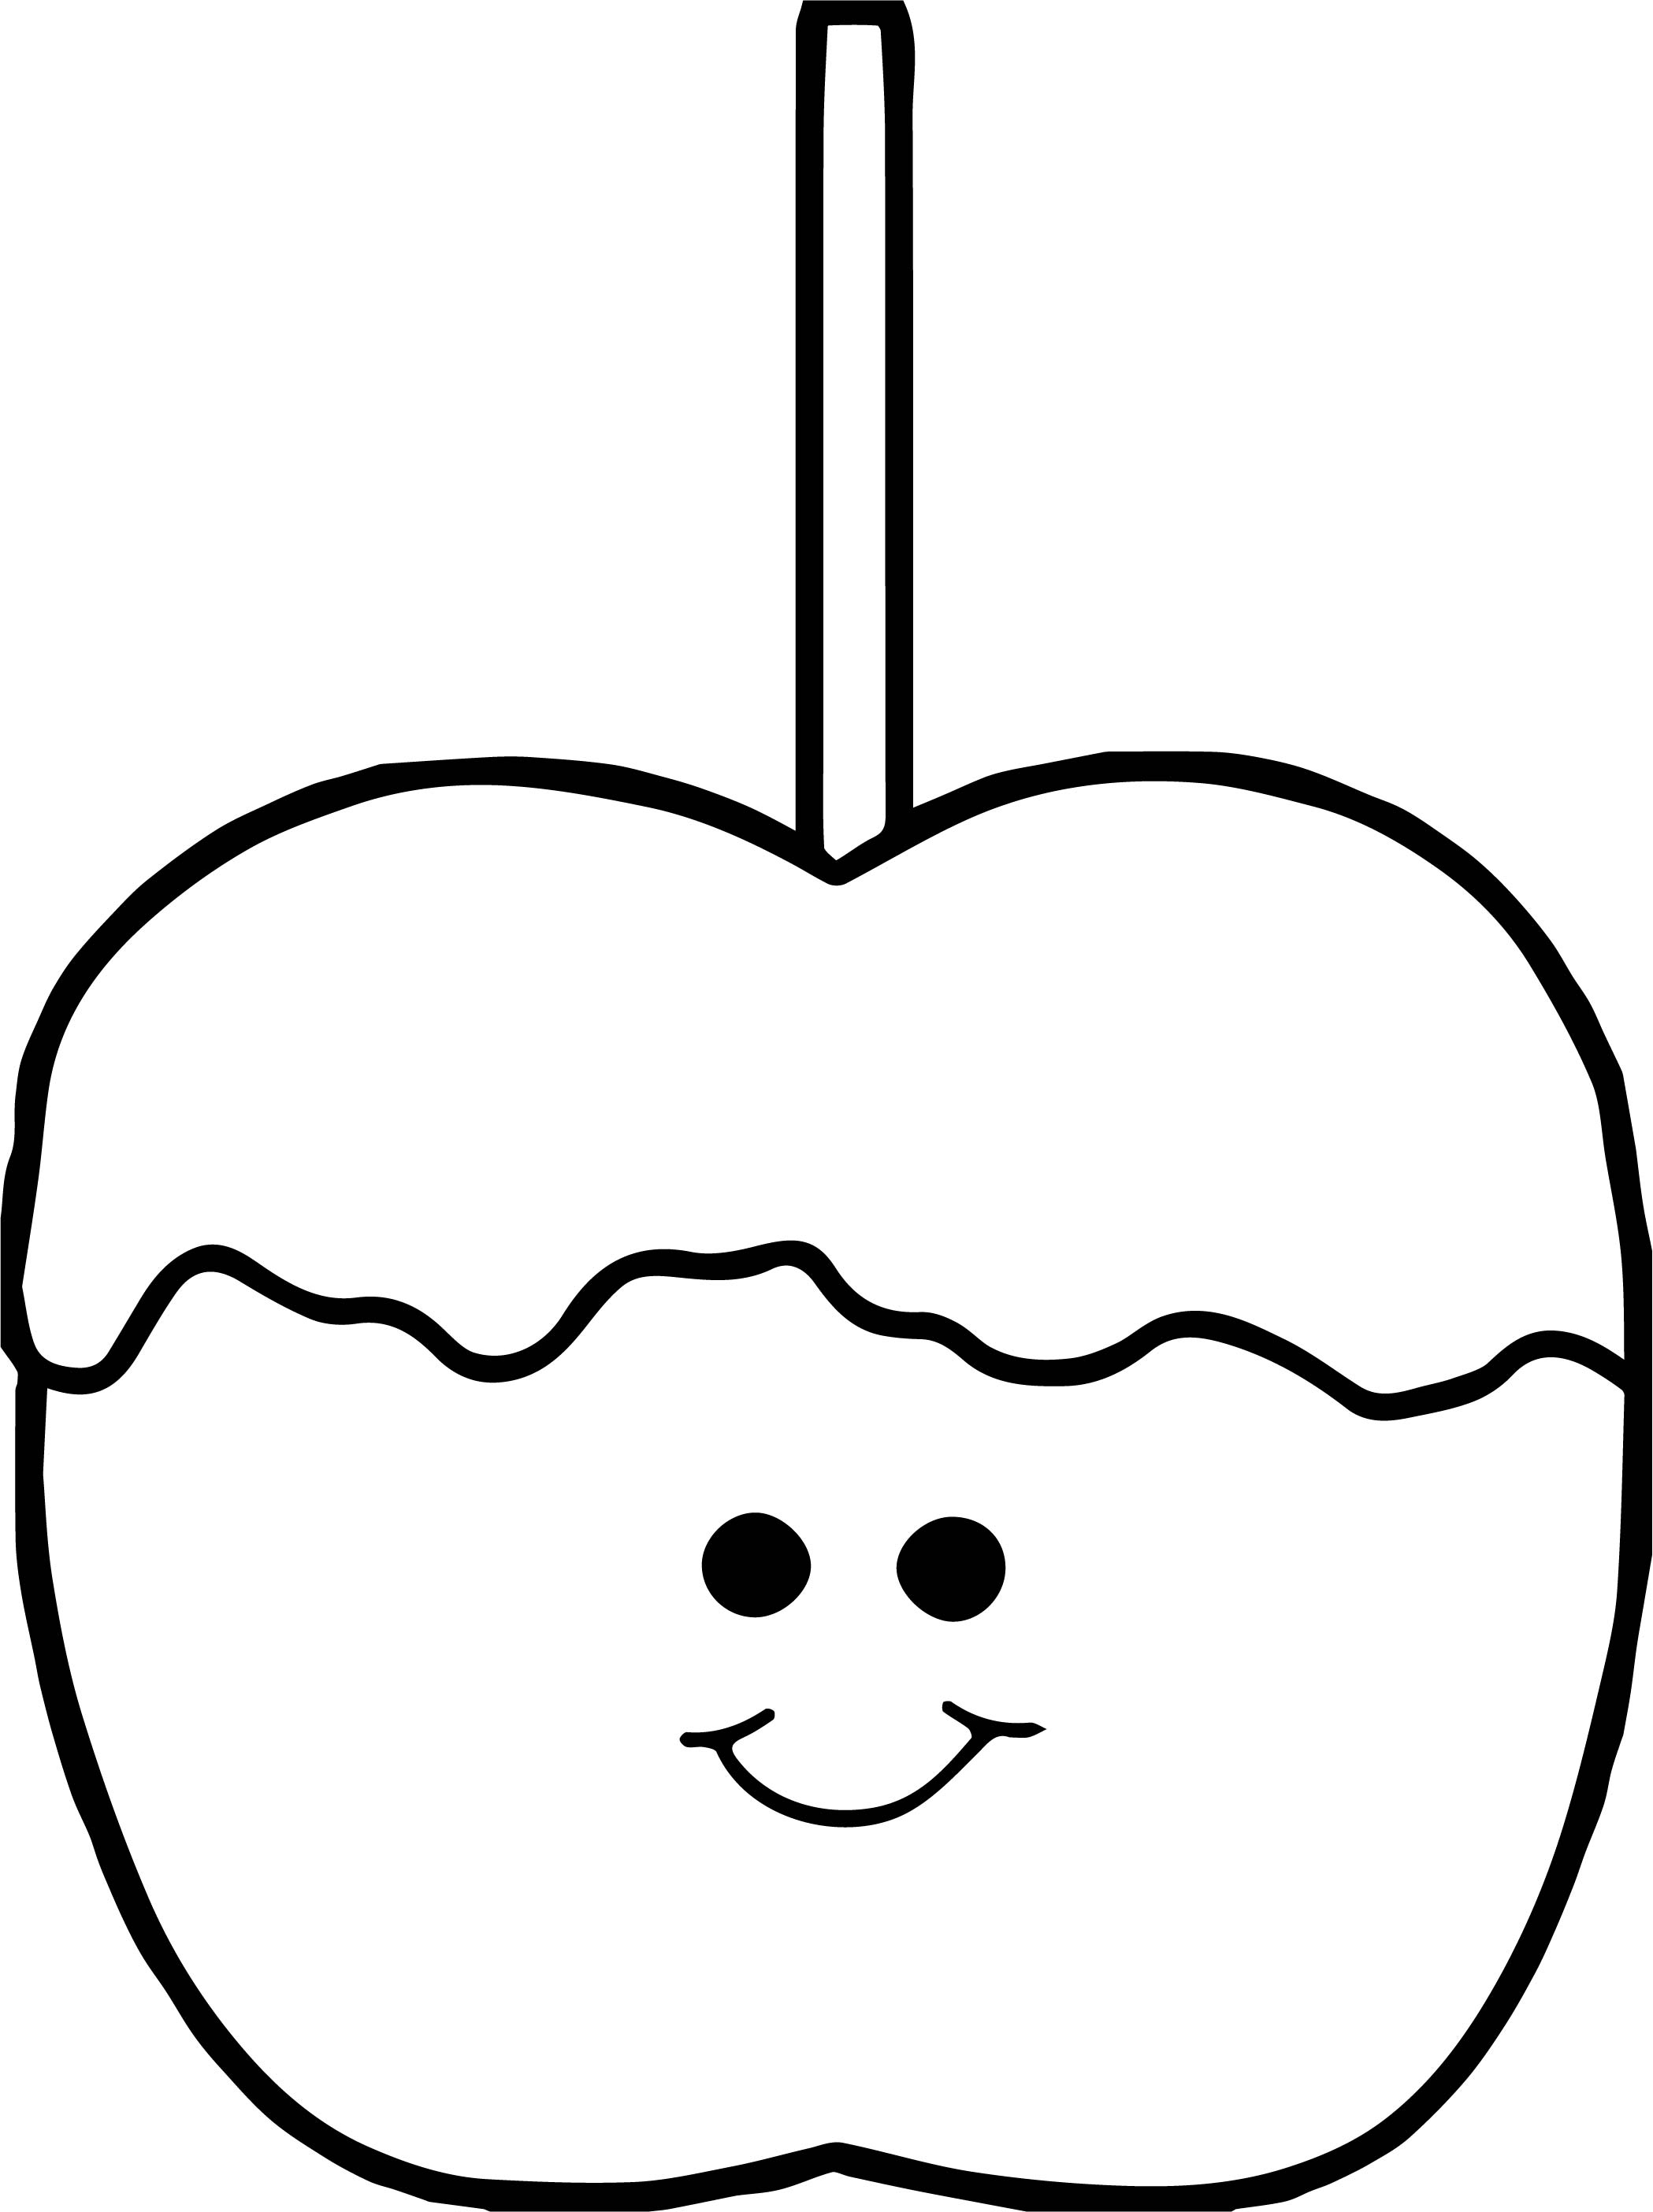 Cute Caramel Apple Coloring Page